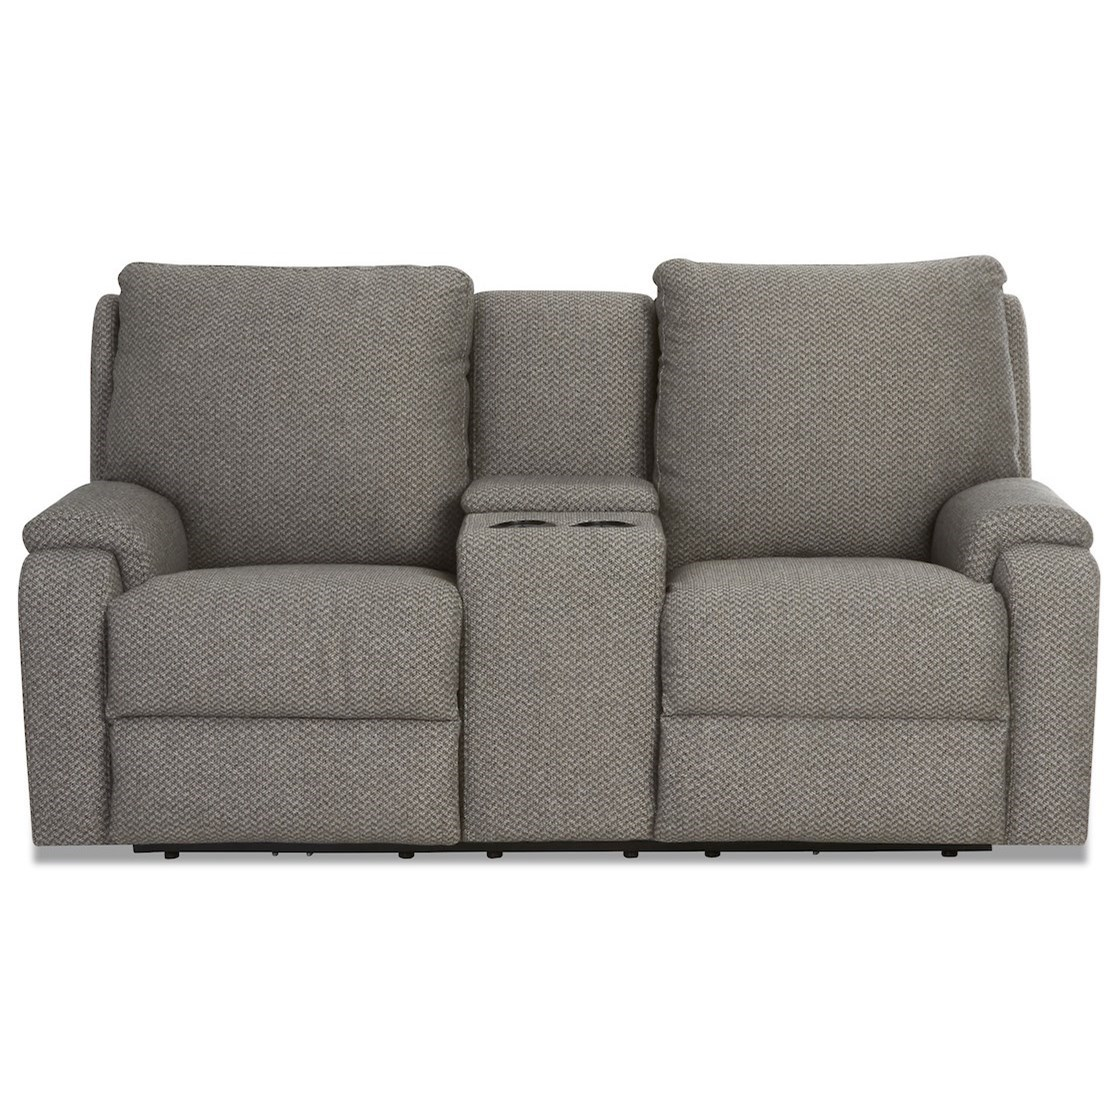 Podrick Power Reclining Console Loveseat by Klaussner at Catalog Outlet